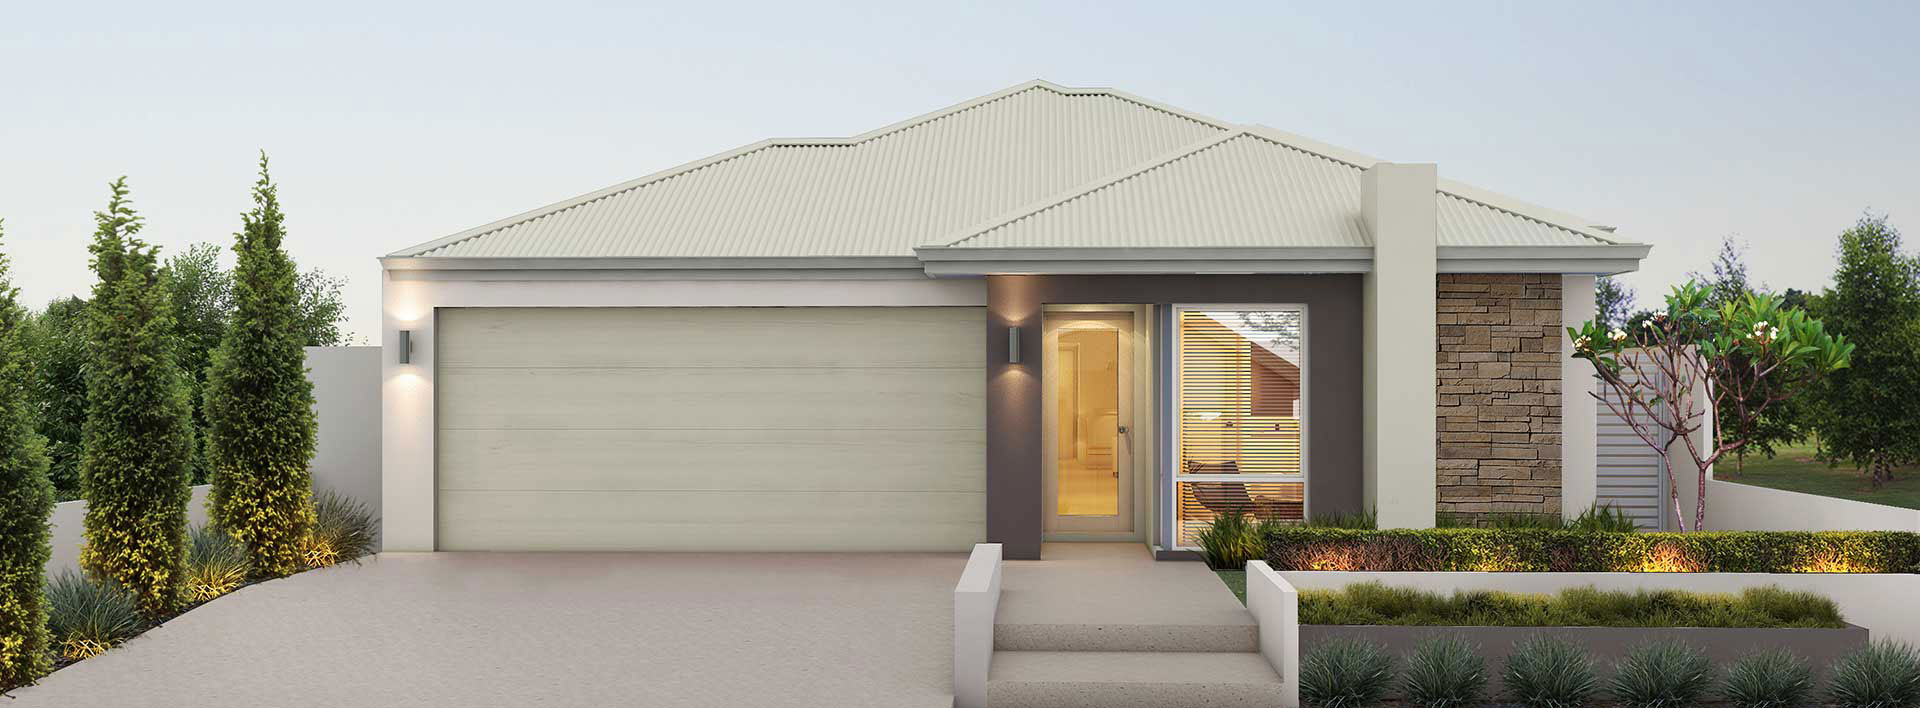 "House frontage of single storey home design ""My Bondi"""